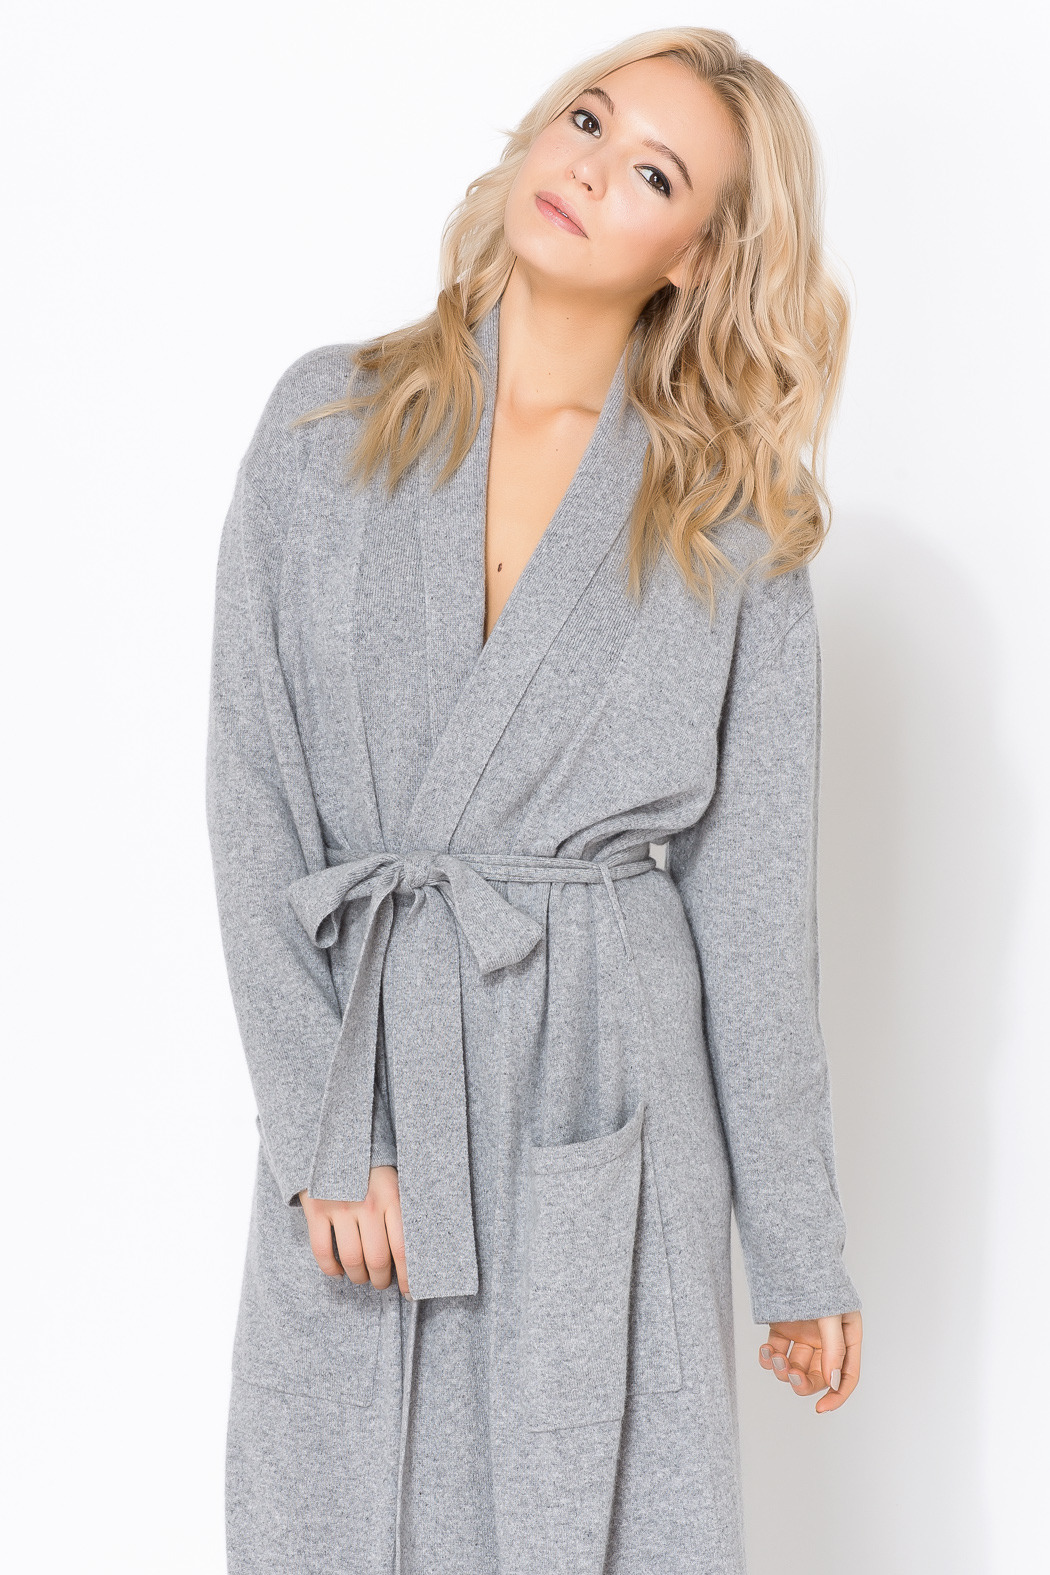 ed7233b859aa Arlotta Cashmere Long Robe from Boston by Lulabelle — Shoptiques